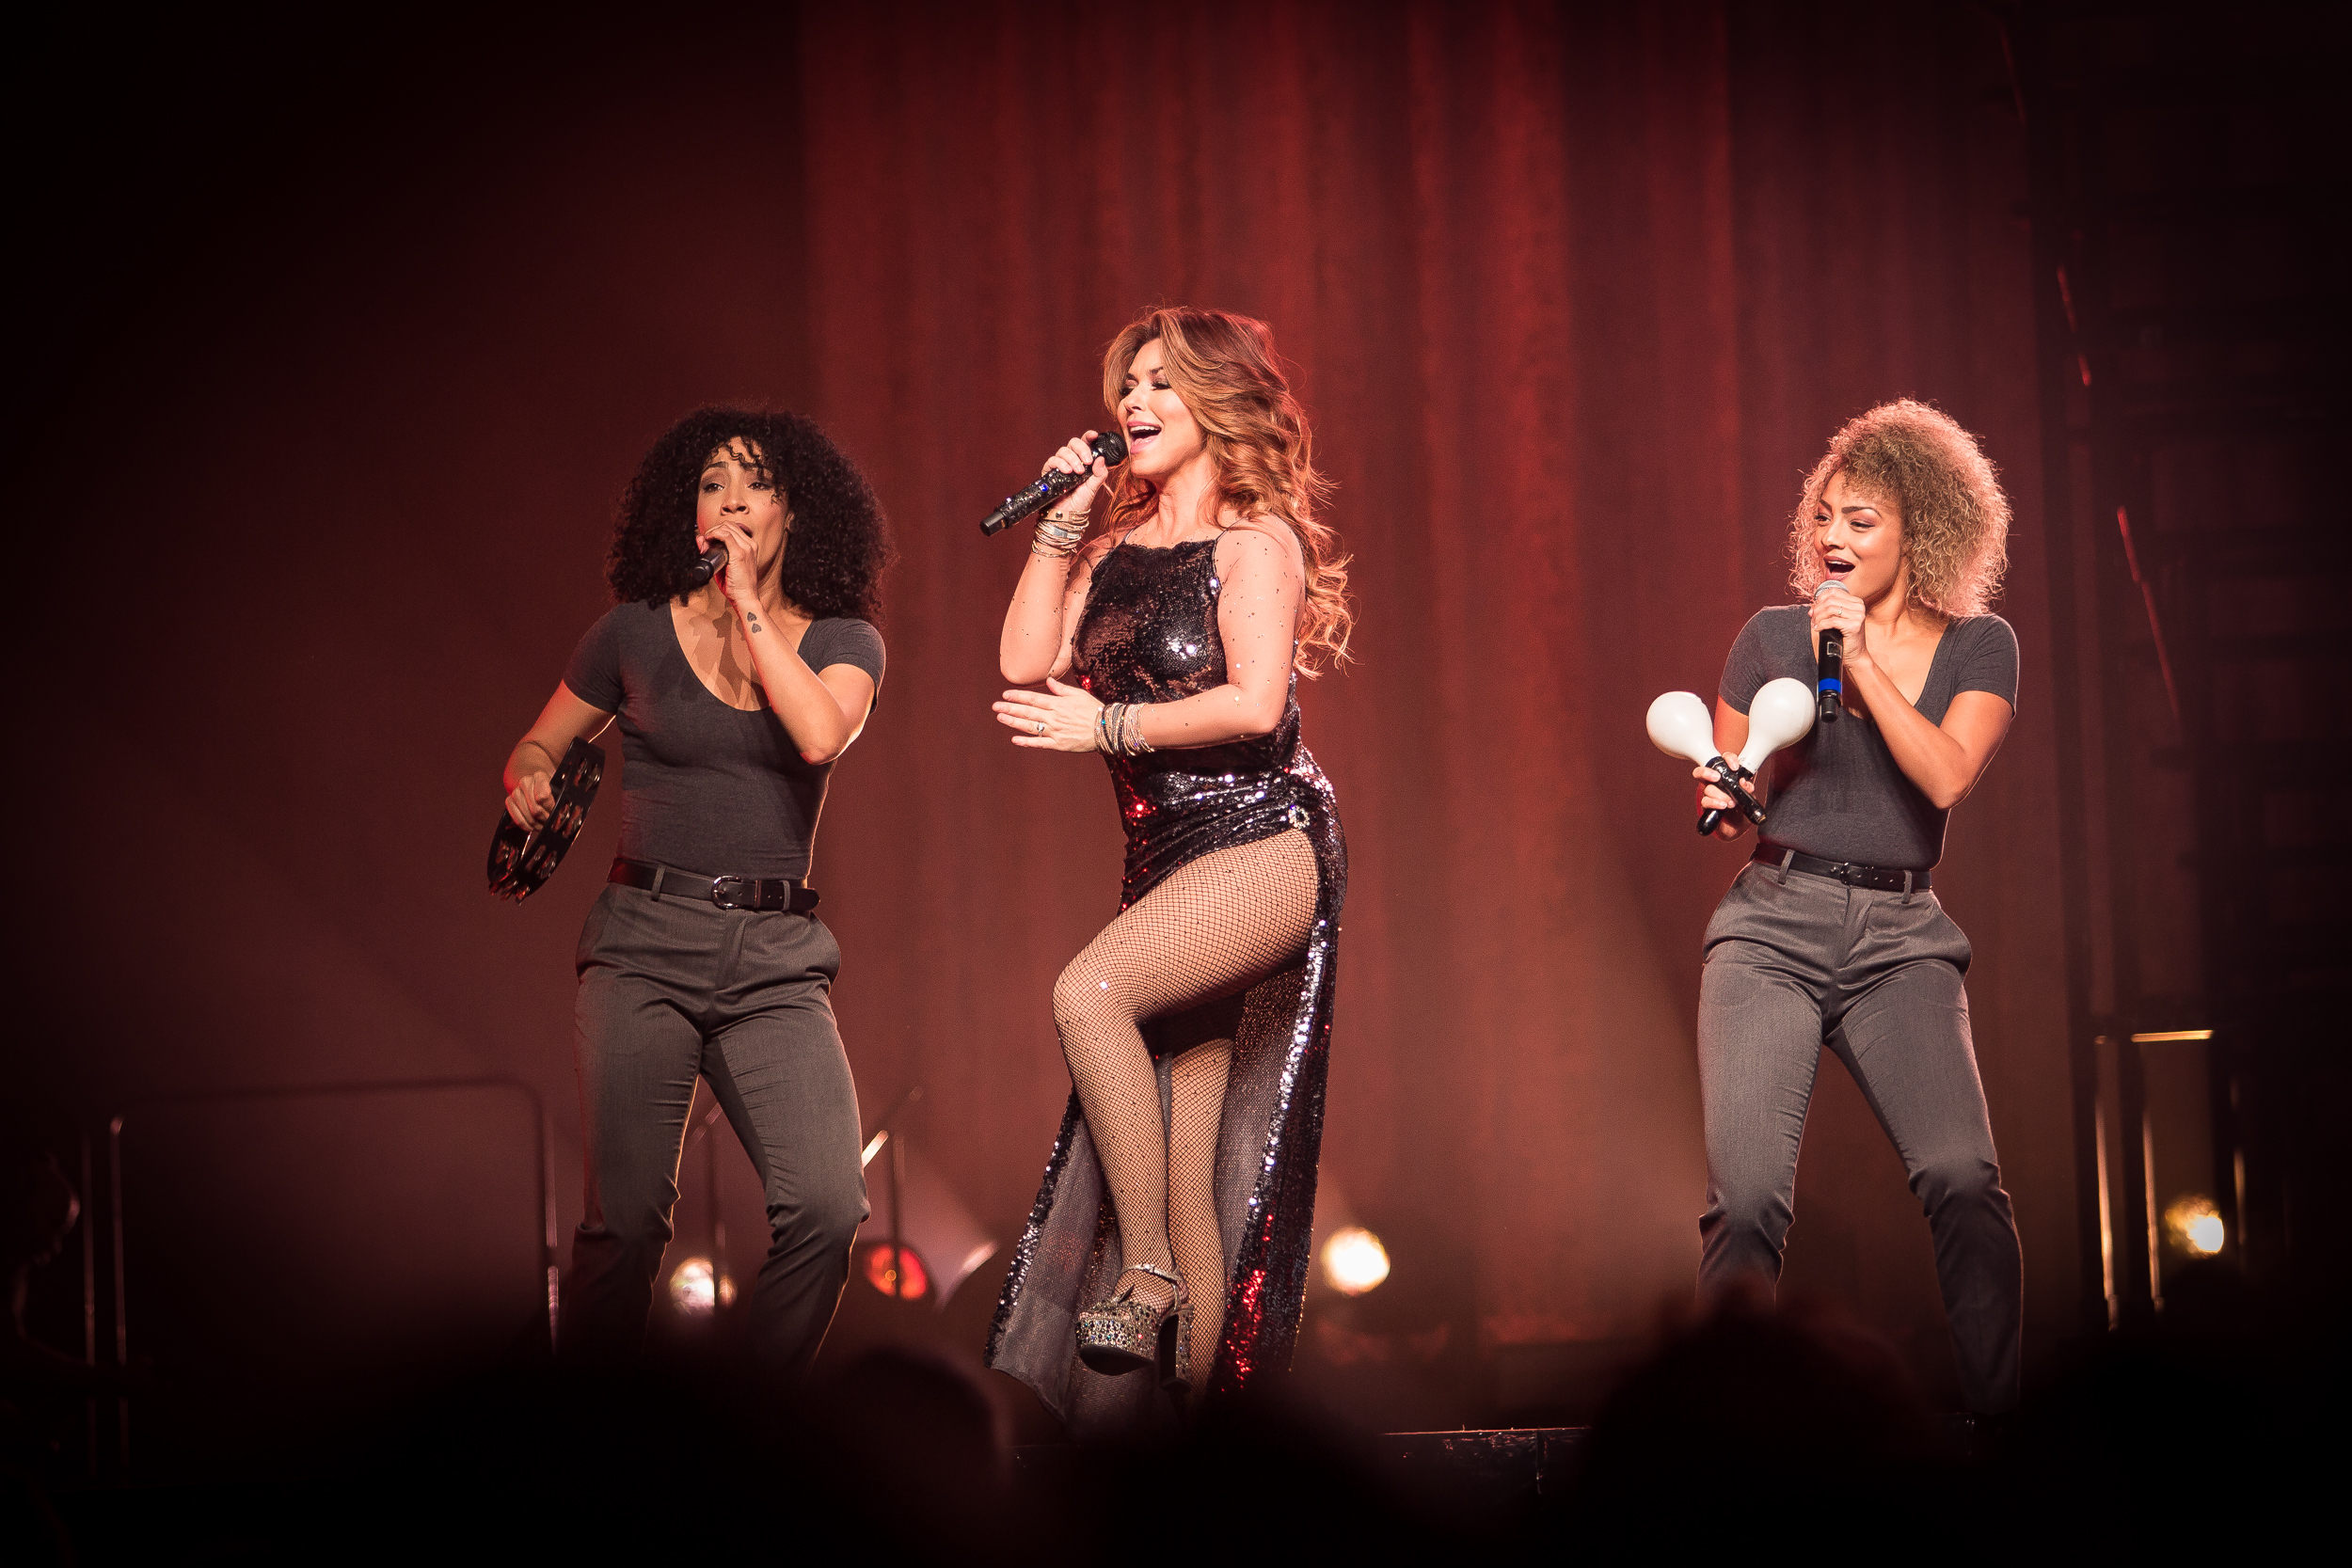 Shania Twain live at Oslo Spektrum